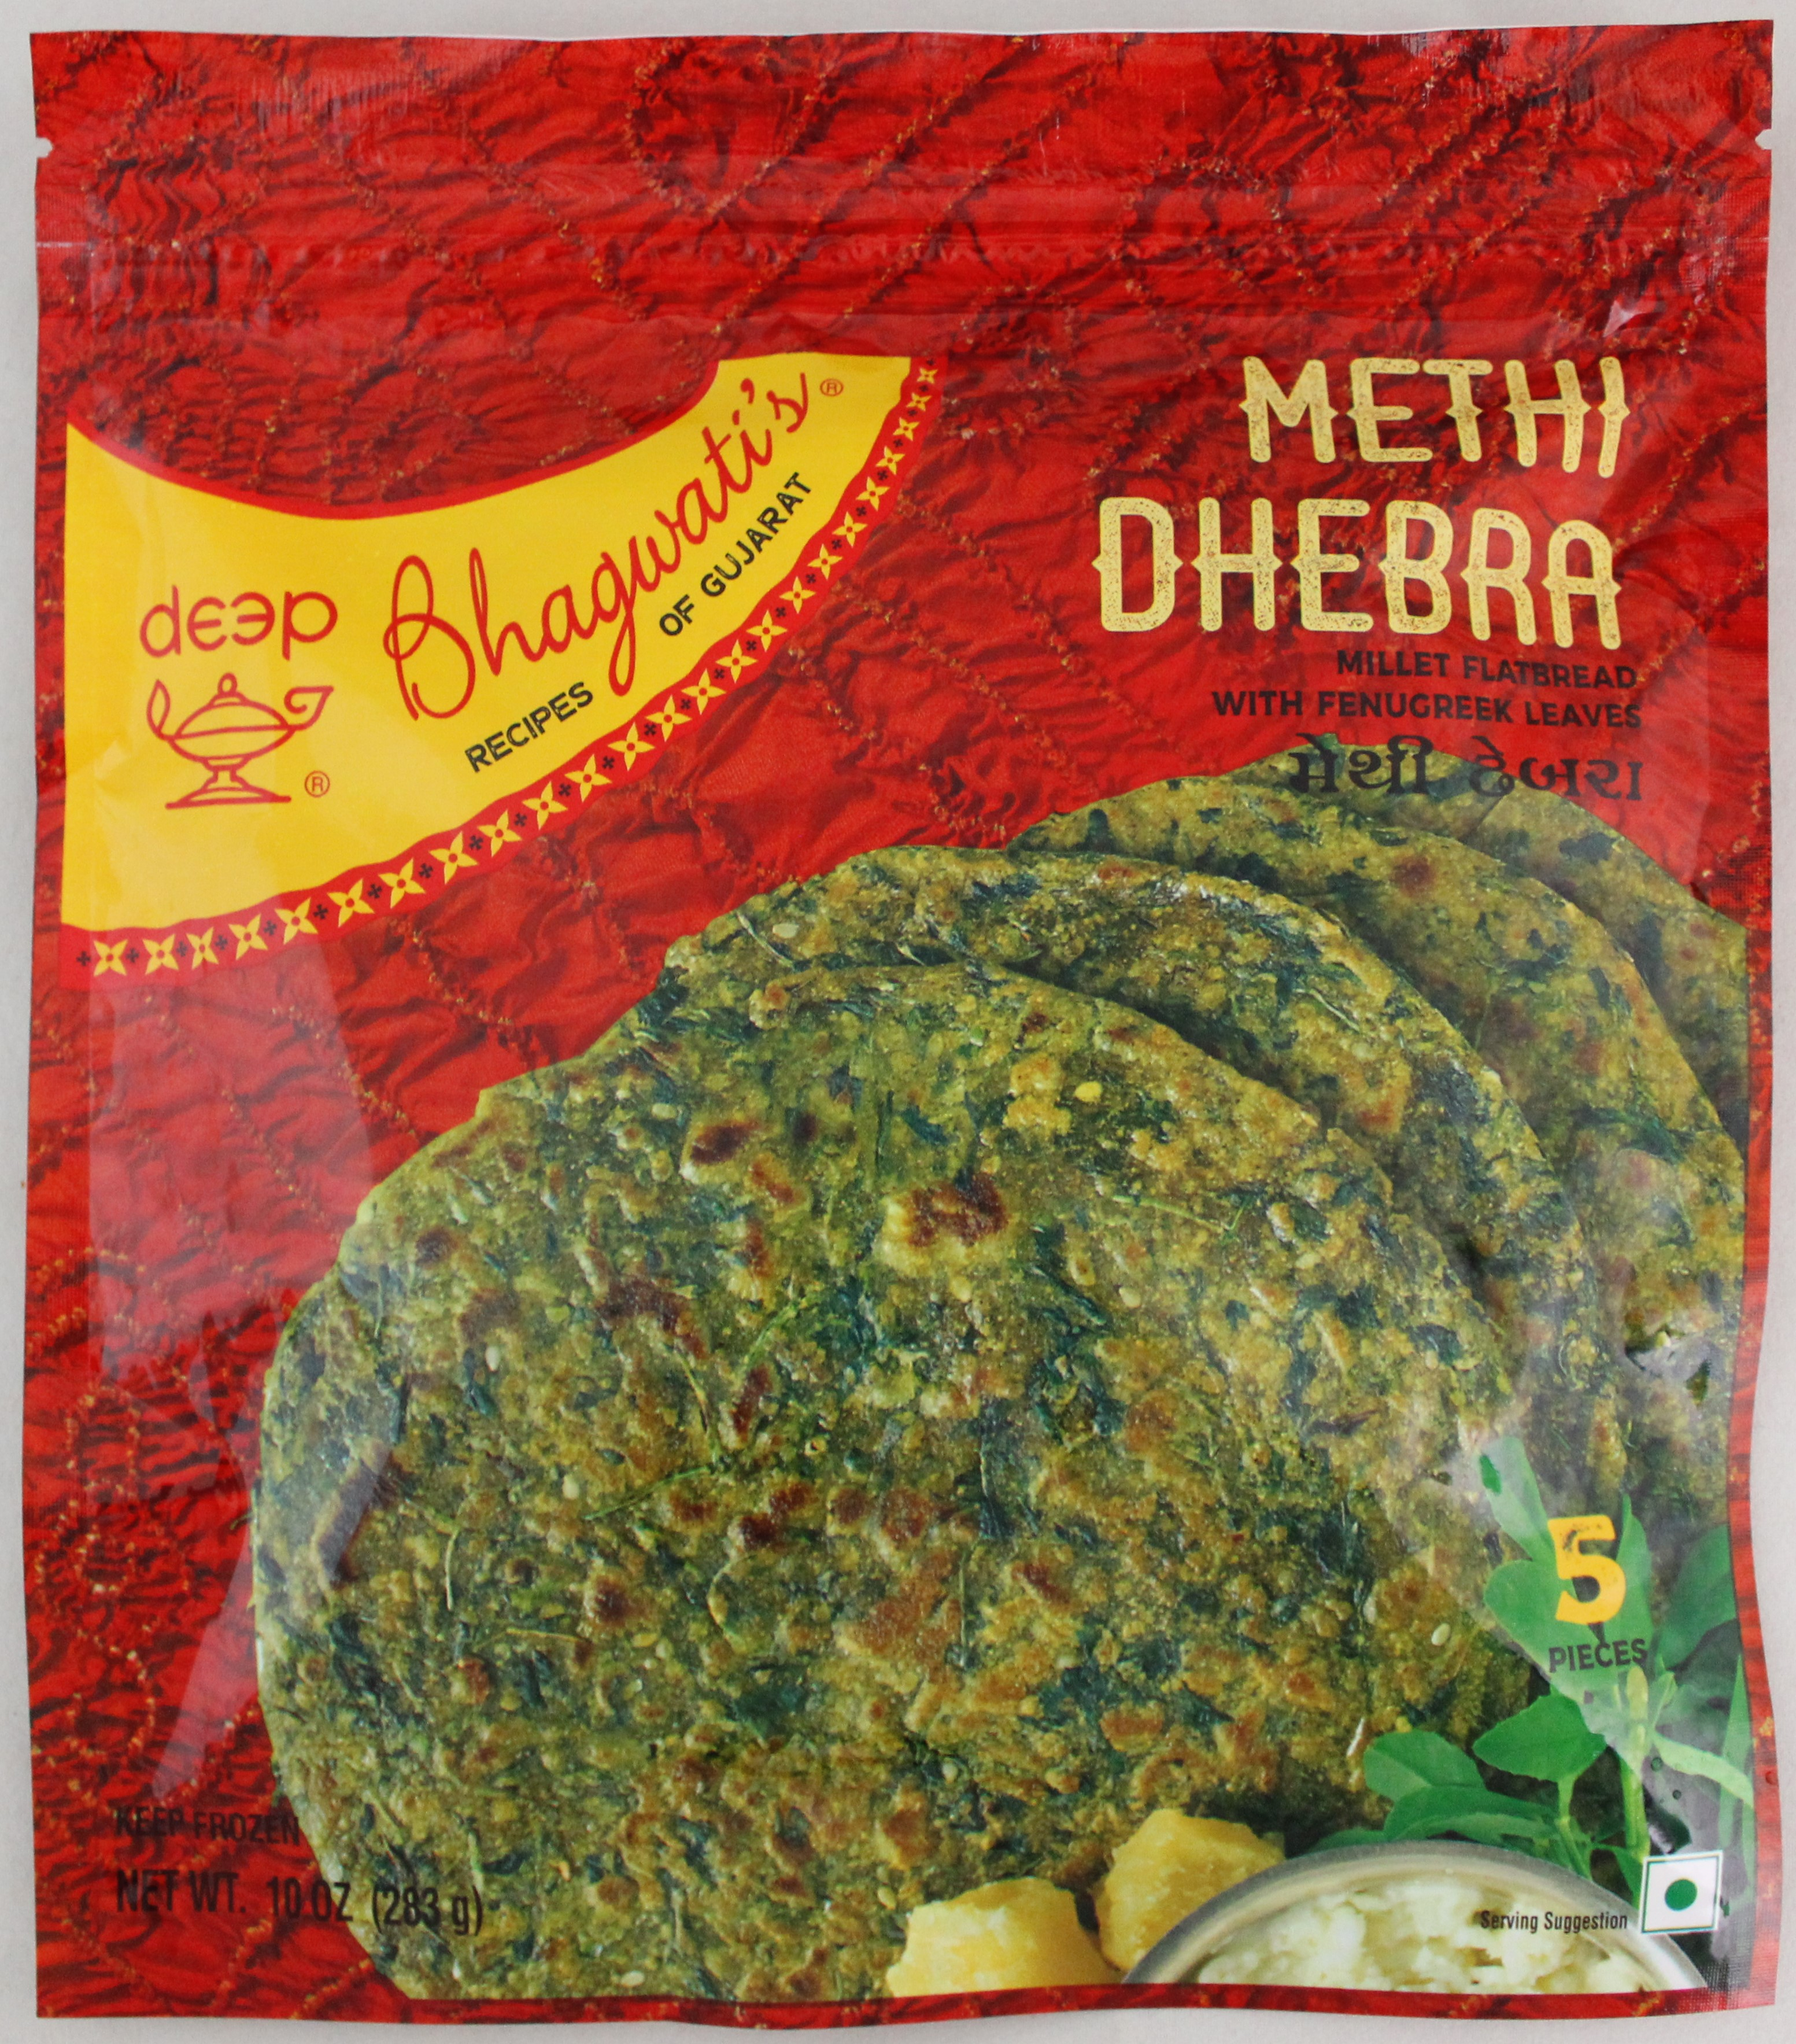 Methi Dhebra 5p-10oz